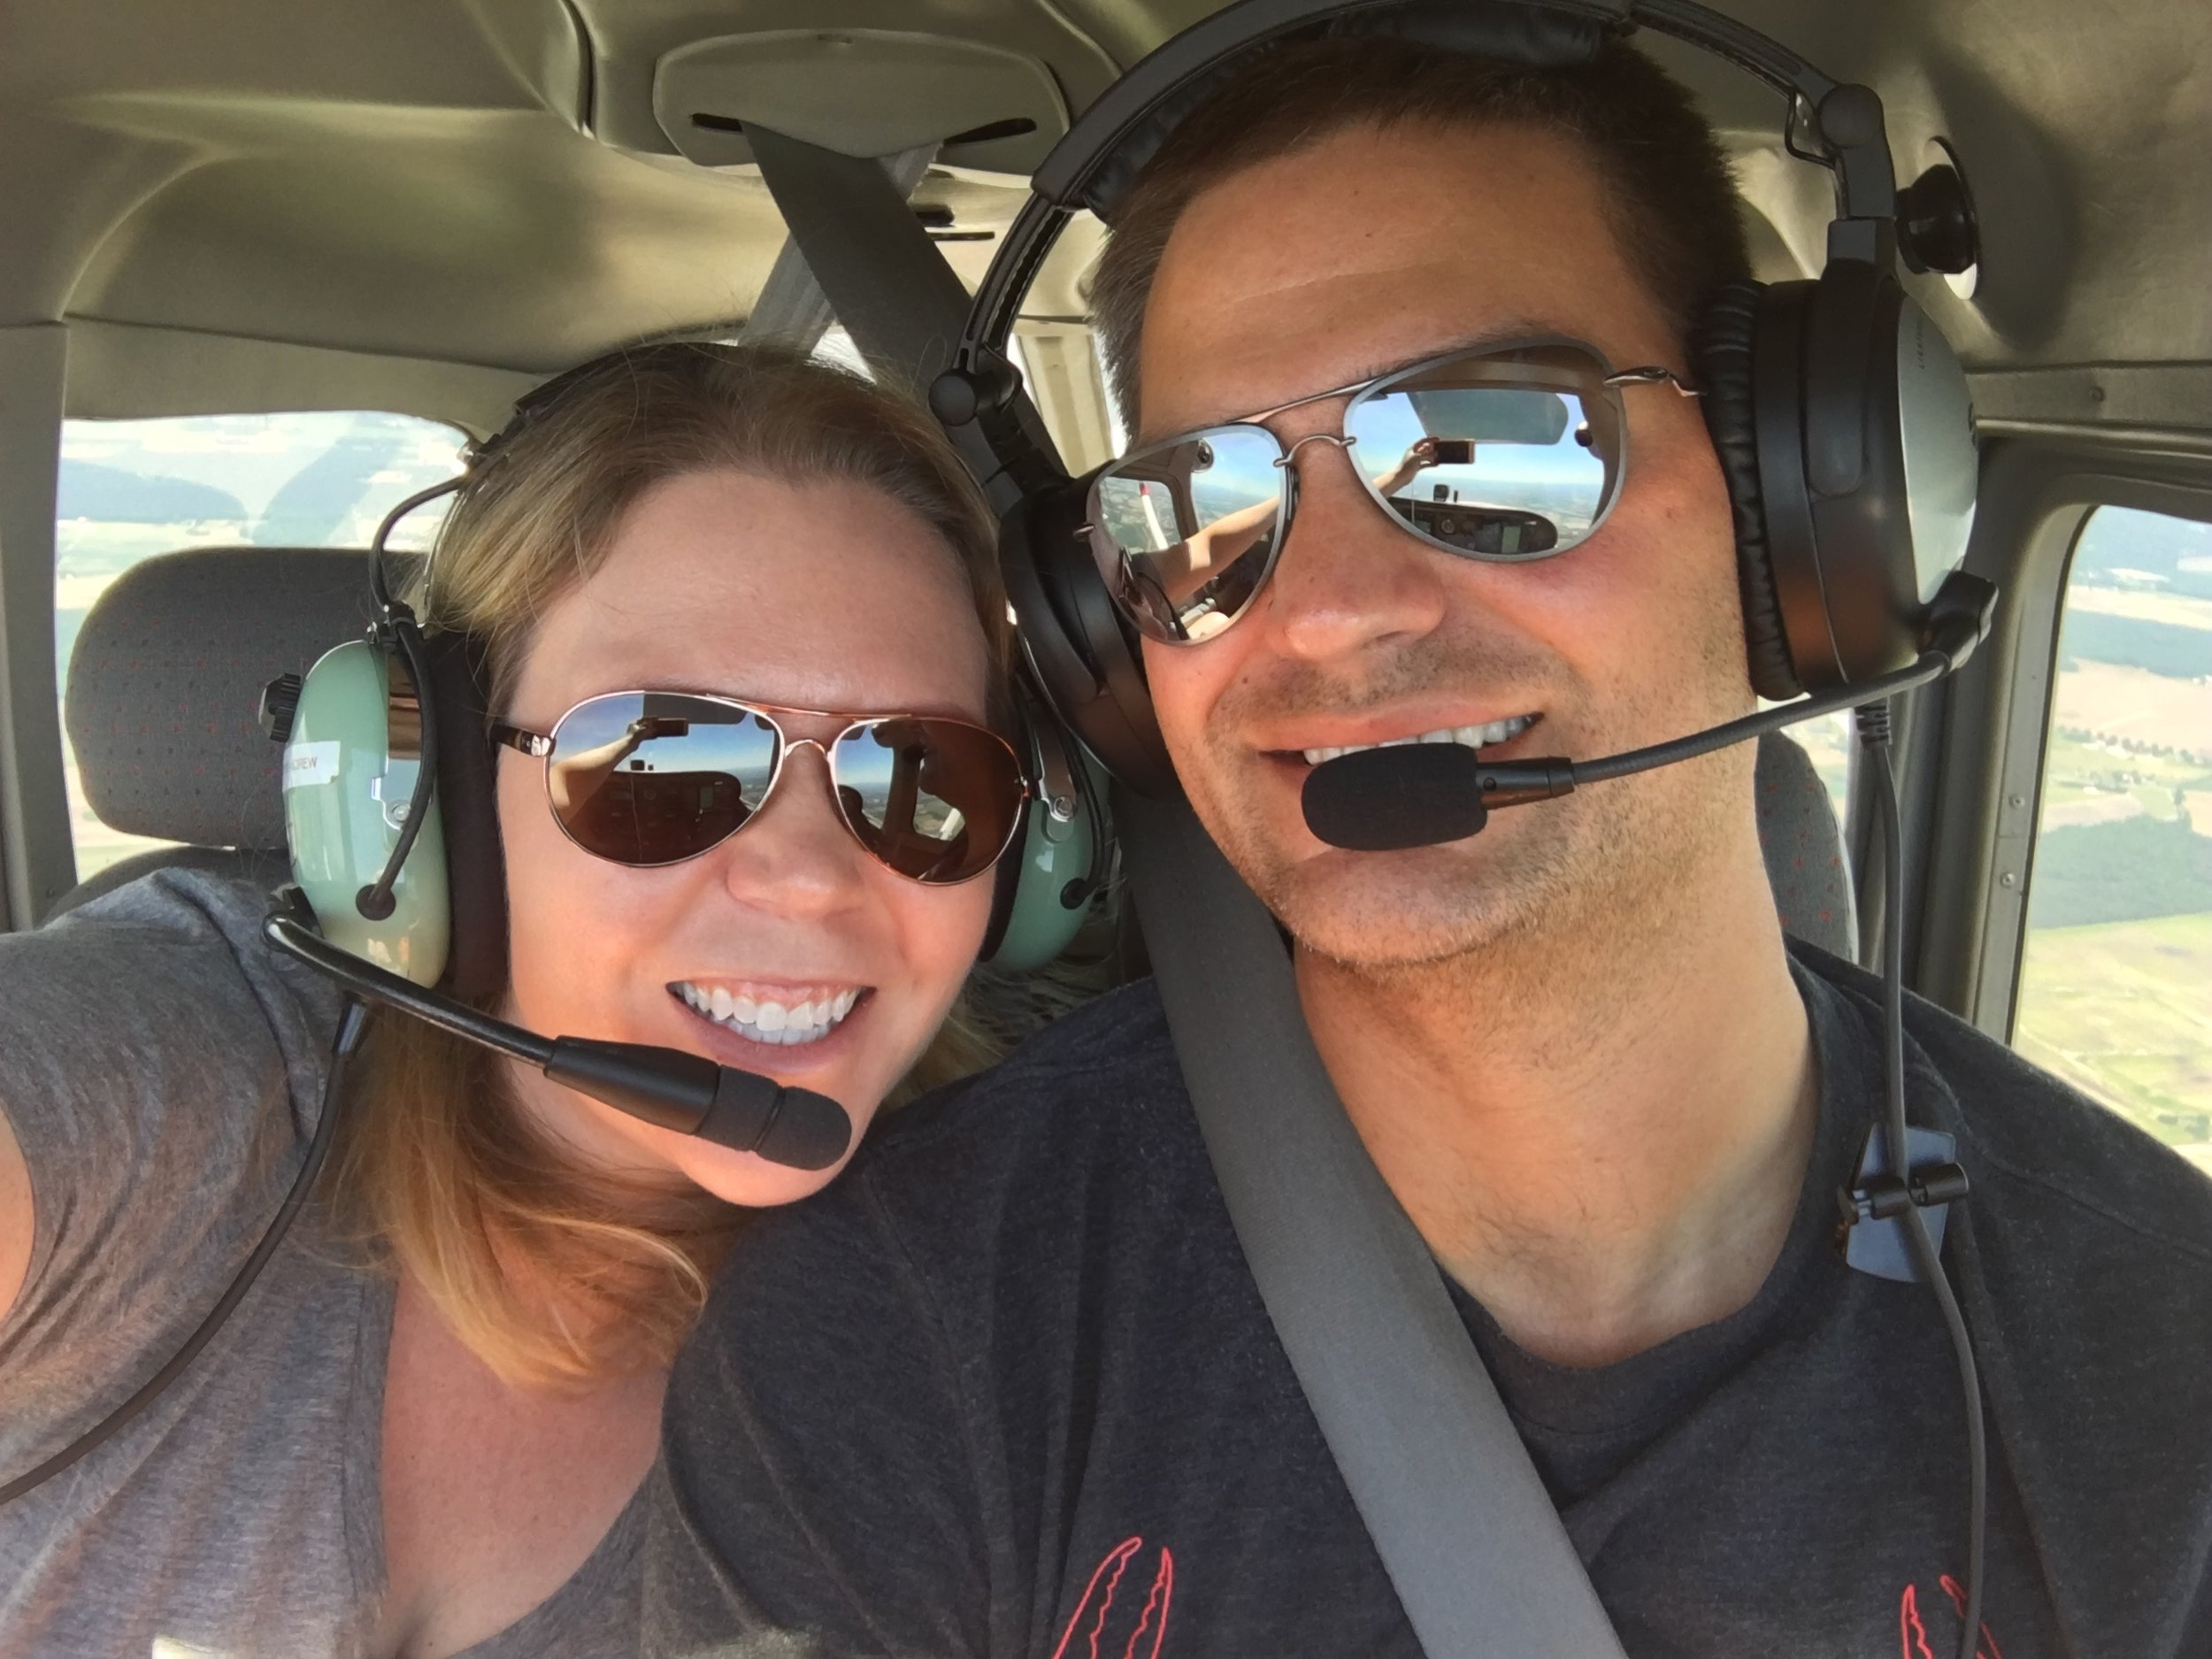 Pilot and Copilot for life!